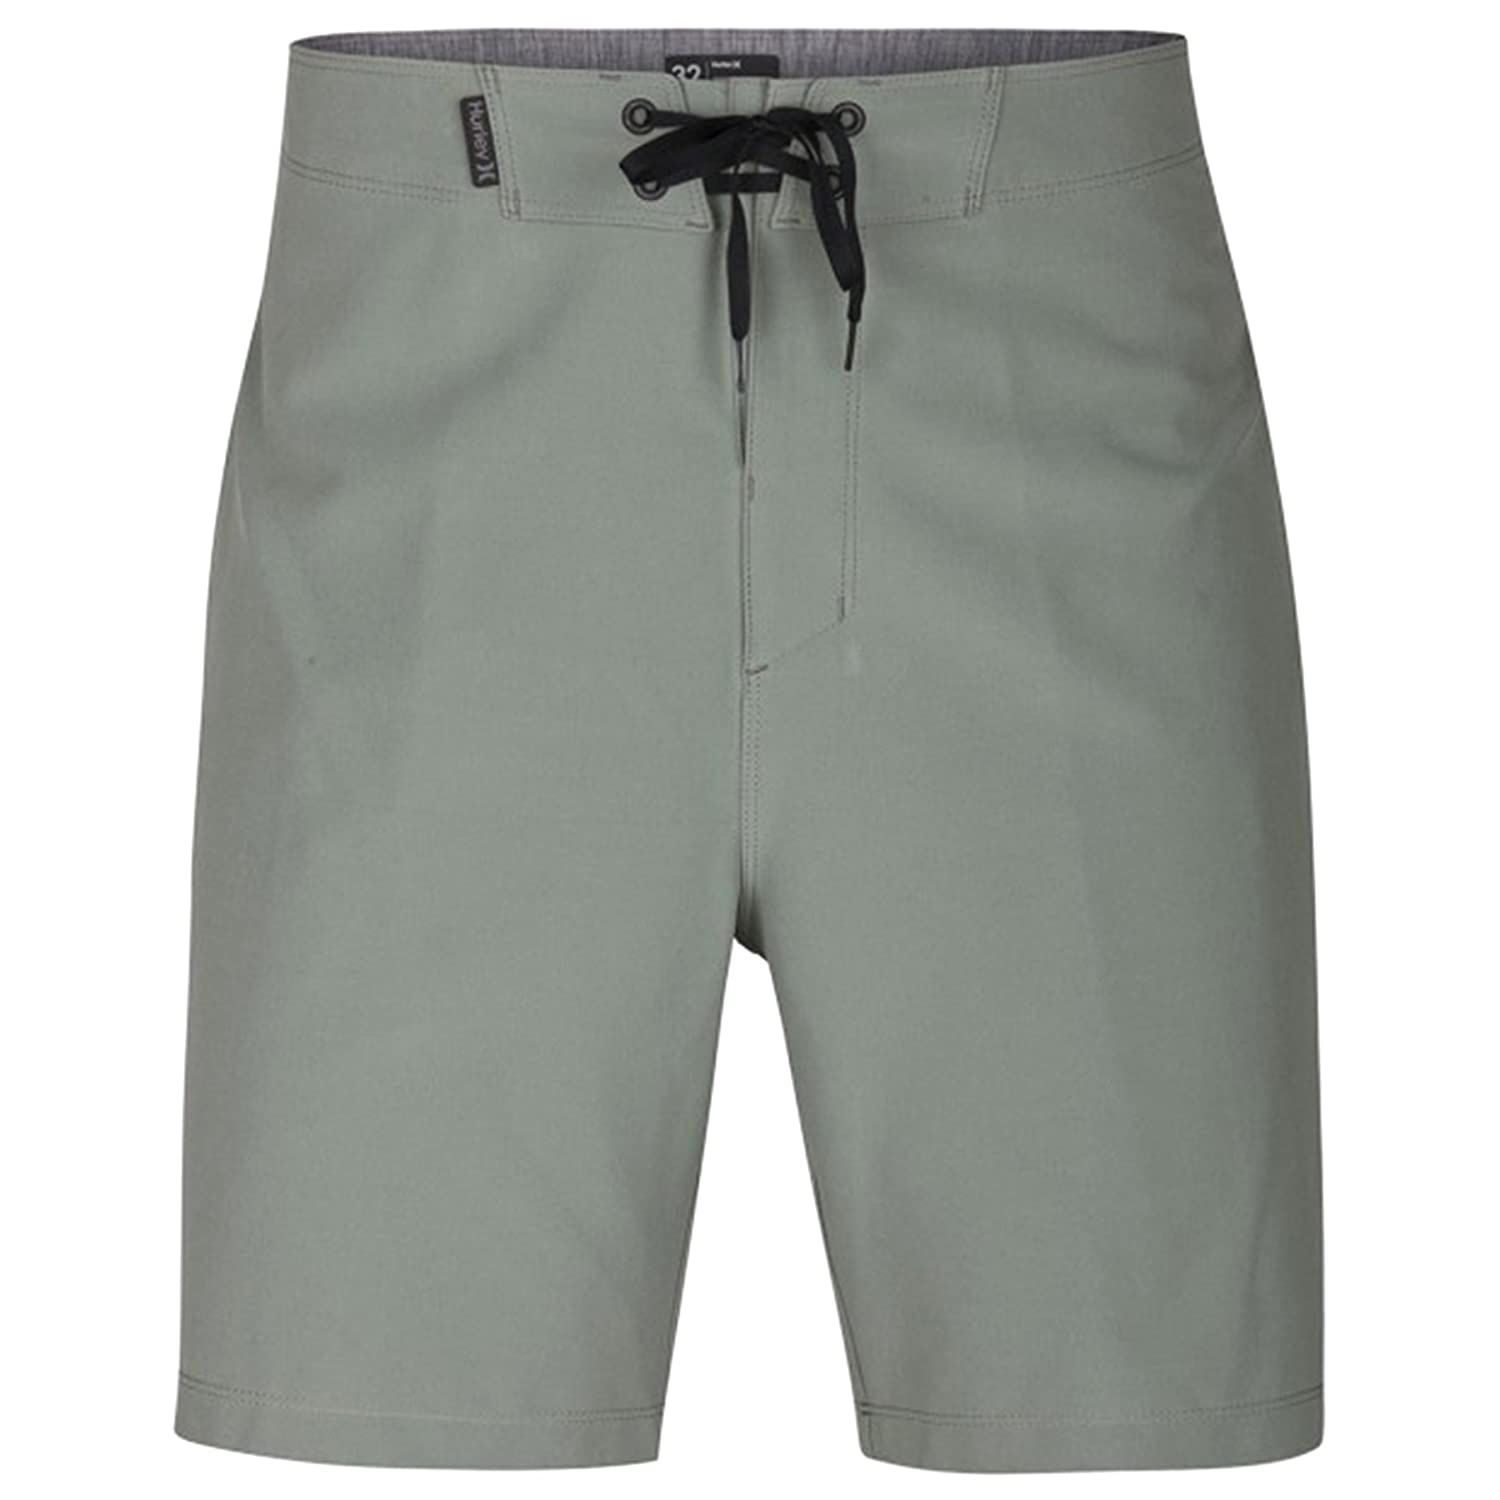 Hurley Mens Phantom P30 One /& Only Stretch 20 Boardshort Swim Short 890791